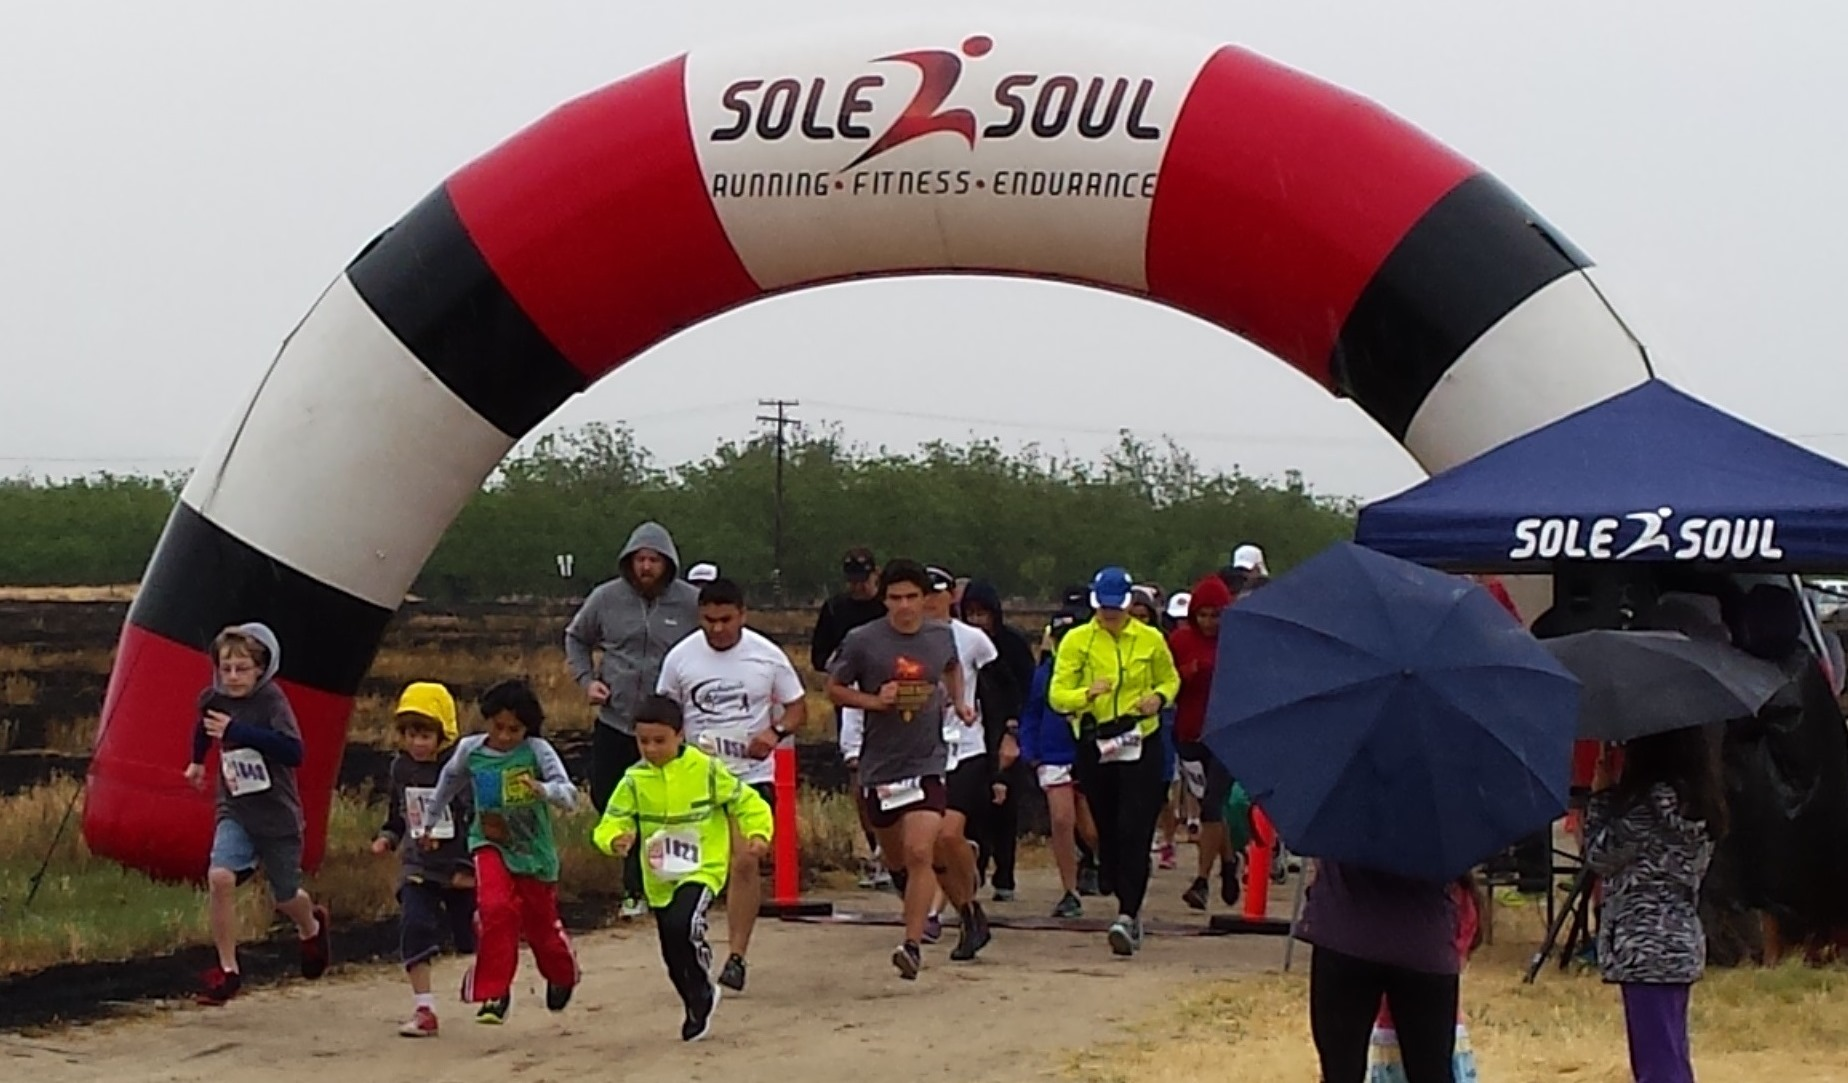 Sasquatch Scurry 5K race